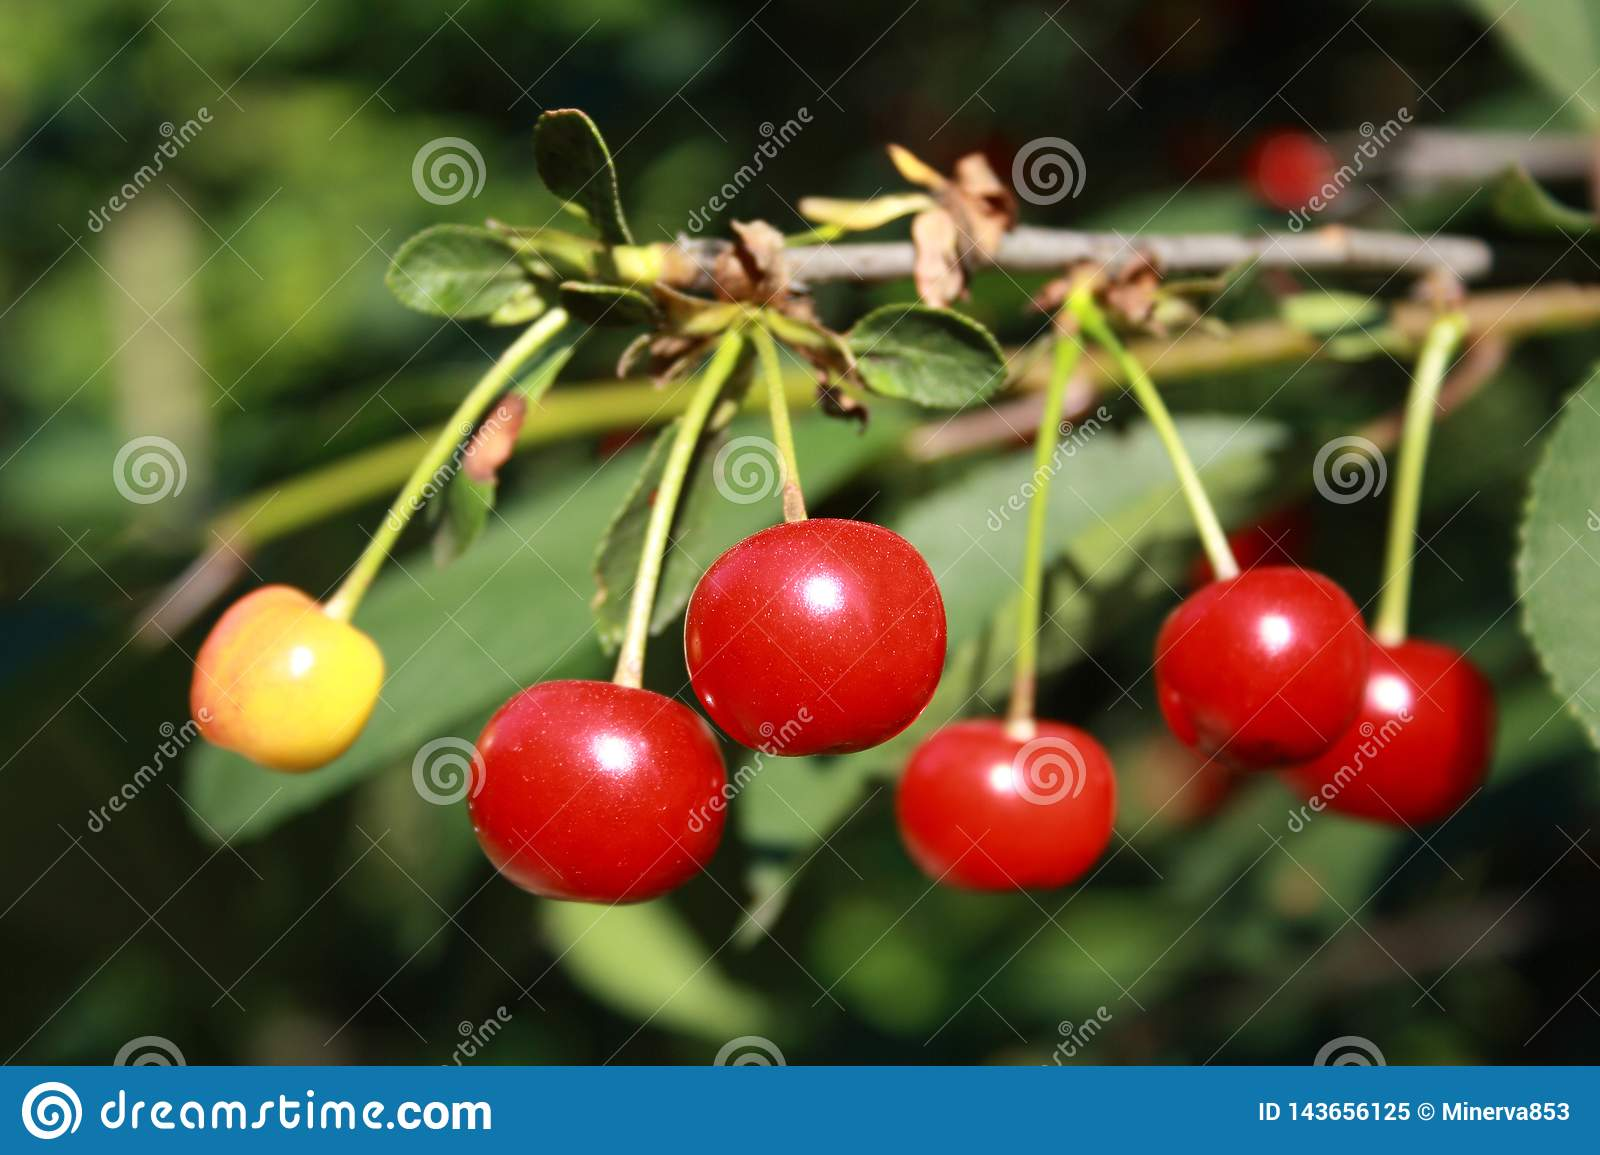 Red and yellow cherries on the branch with leaves